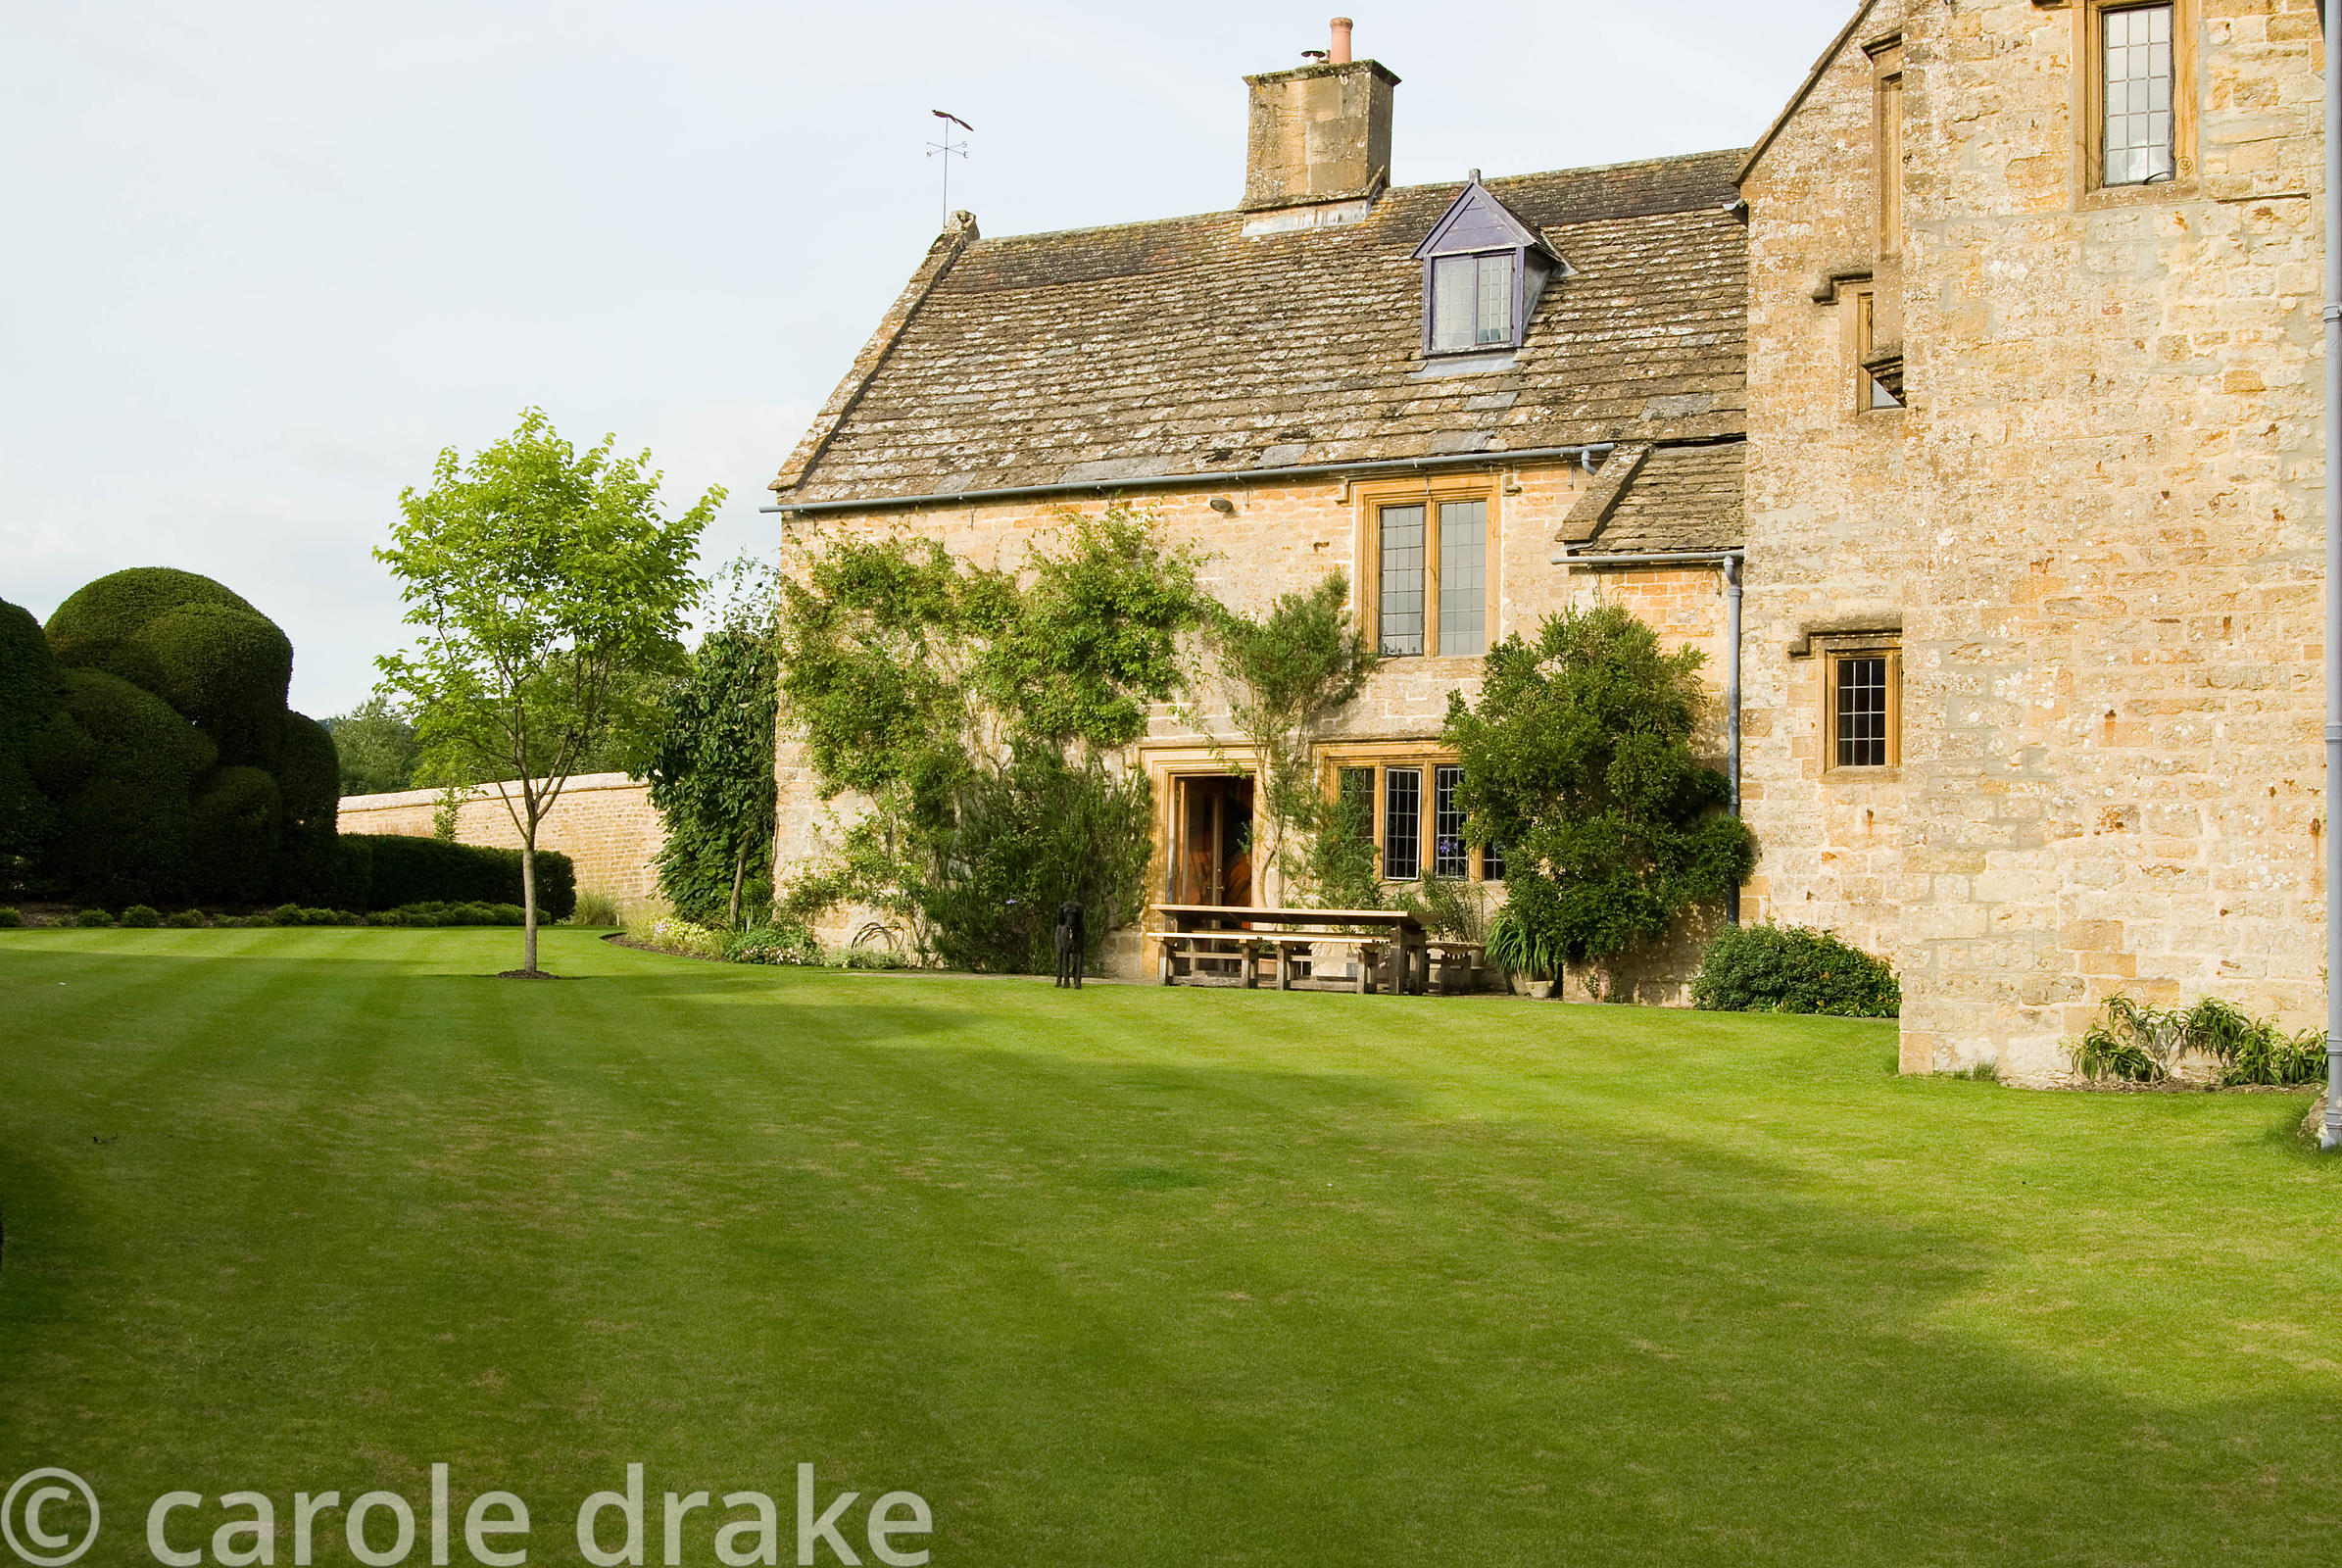 Immaculately kept lawns surround the 17th century farmhouse. Farrs, Beaminster, Dorset, UK